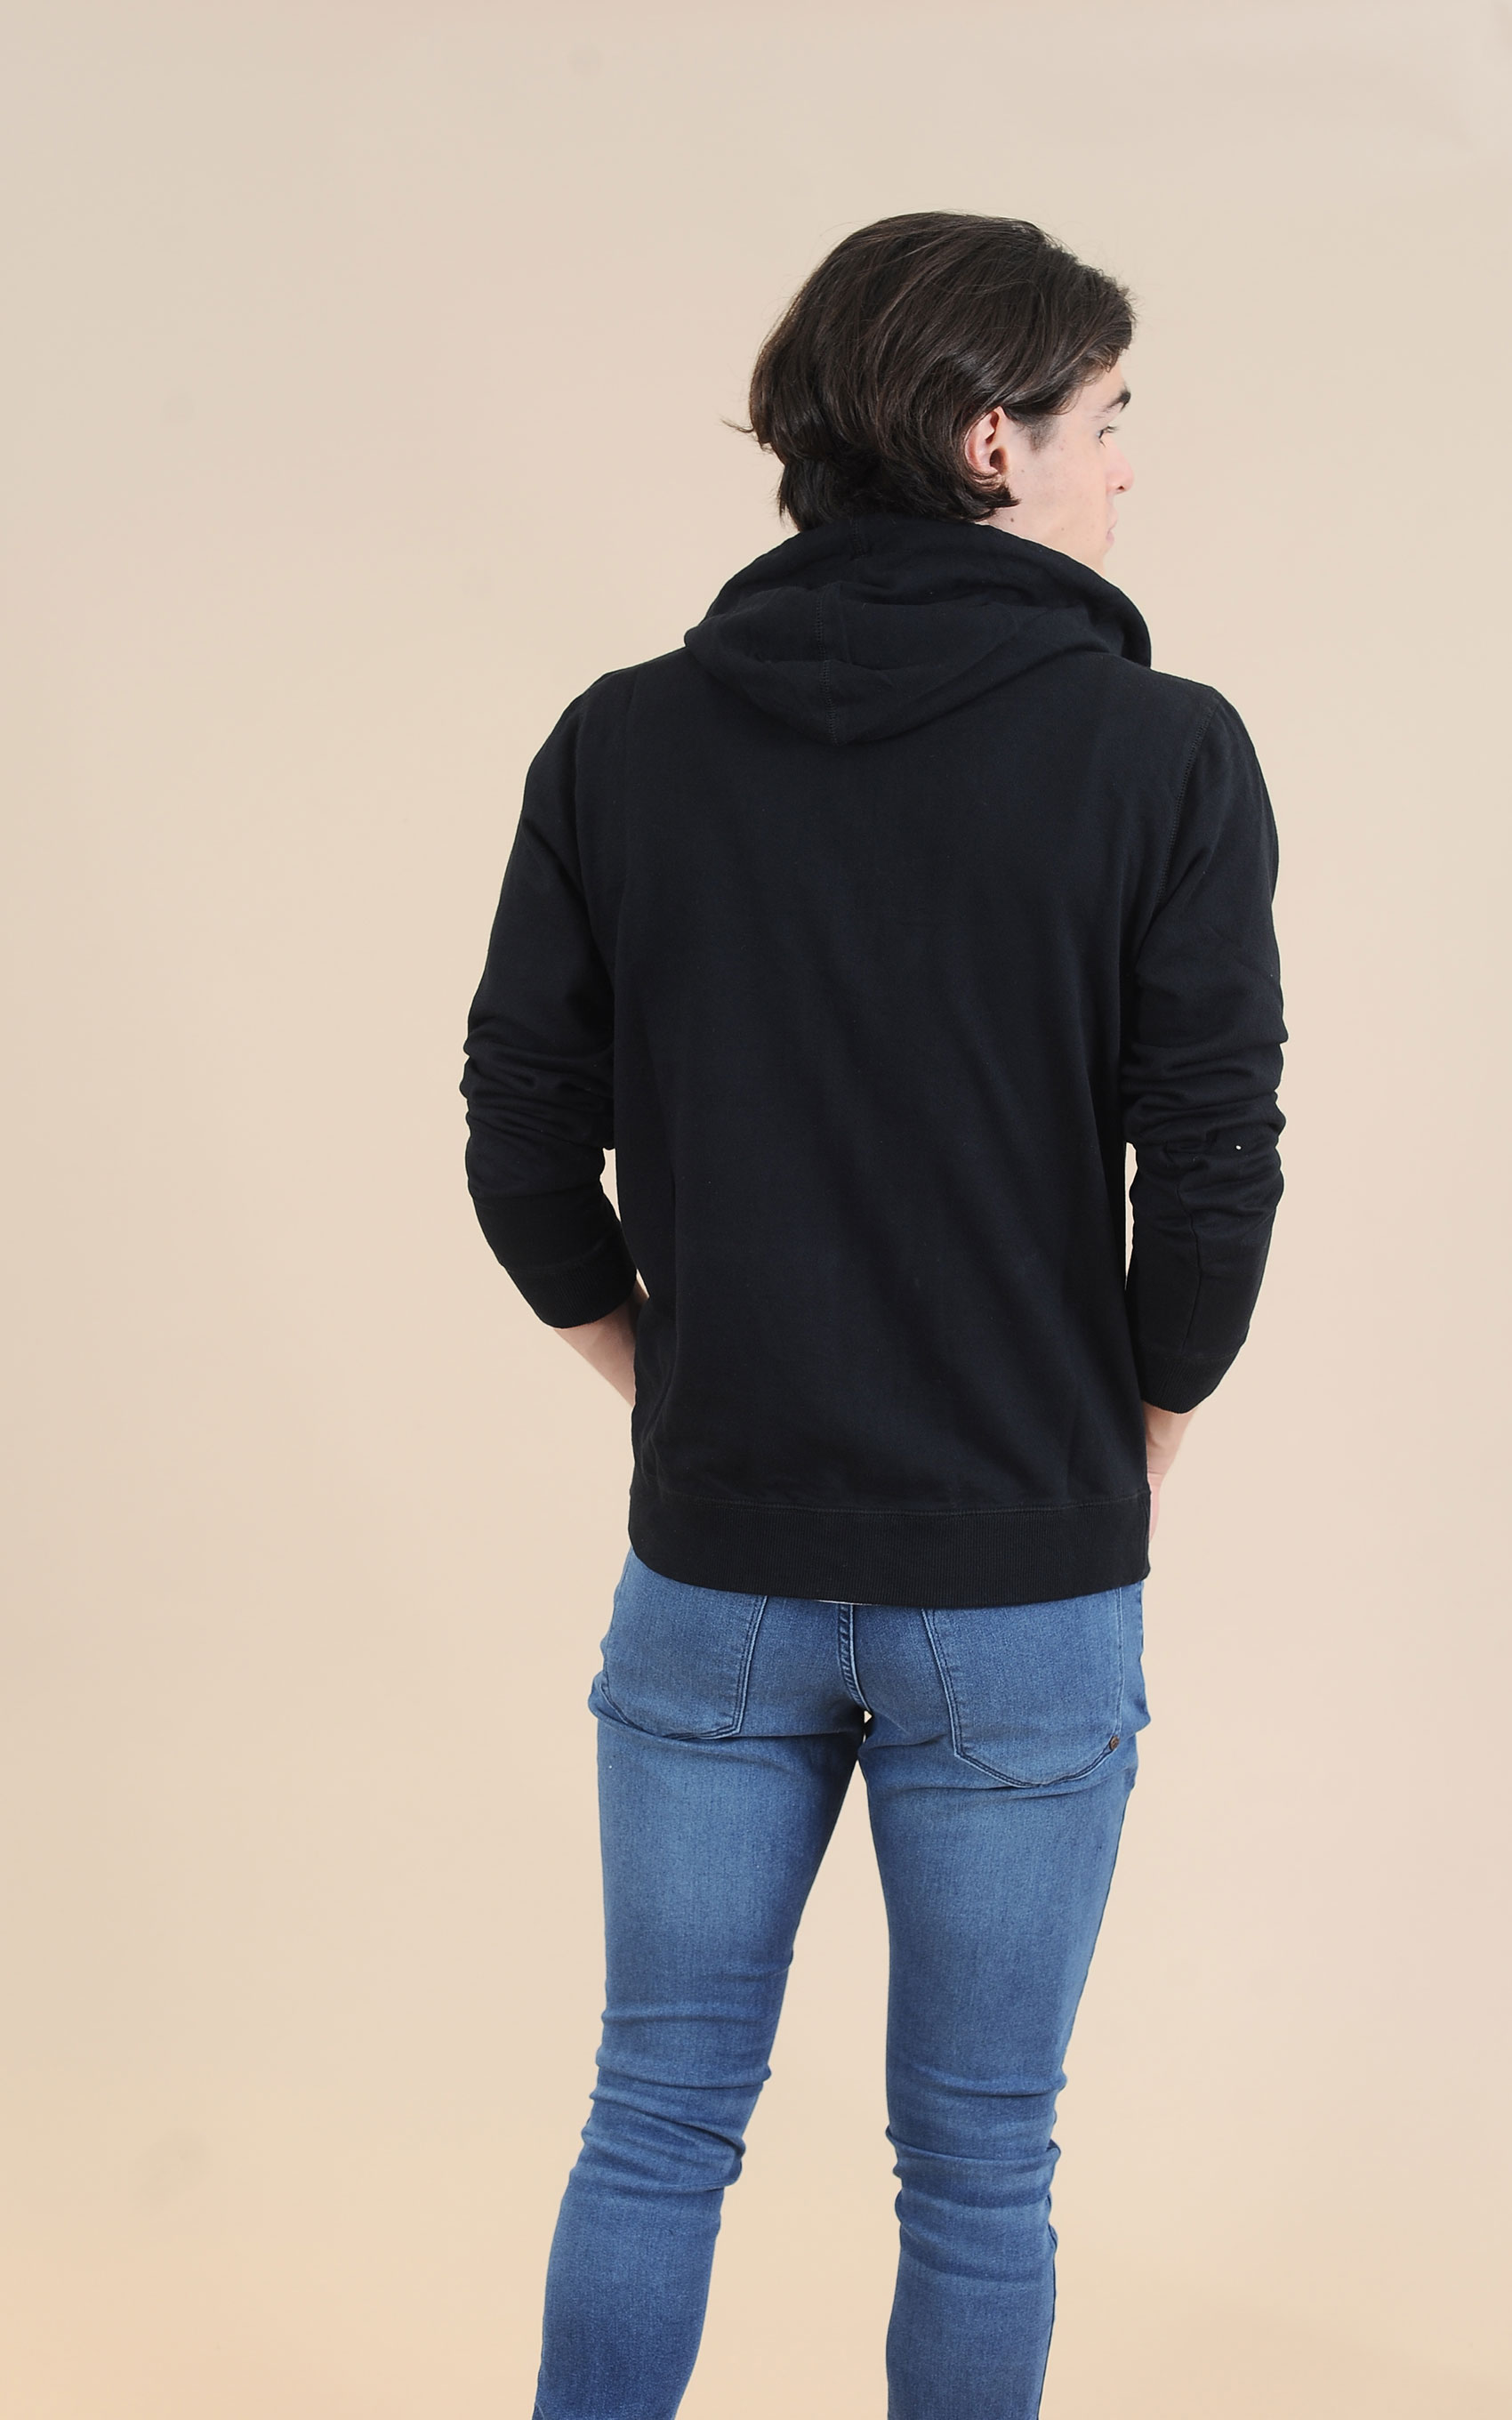 penguin_basic-hoody_43-18-2021__picture-17850